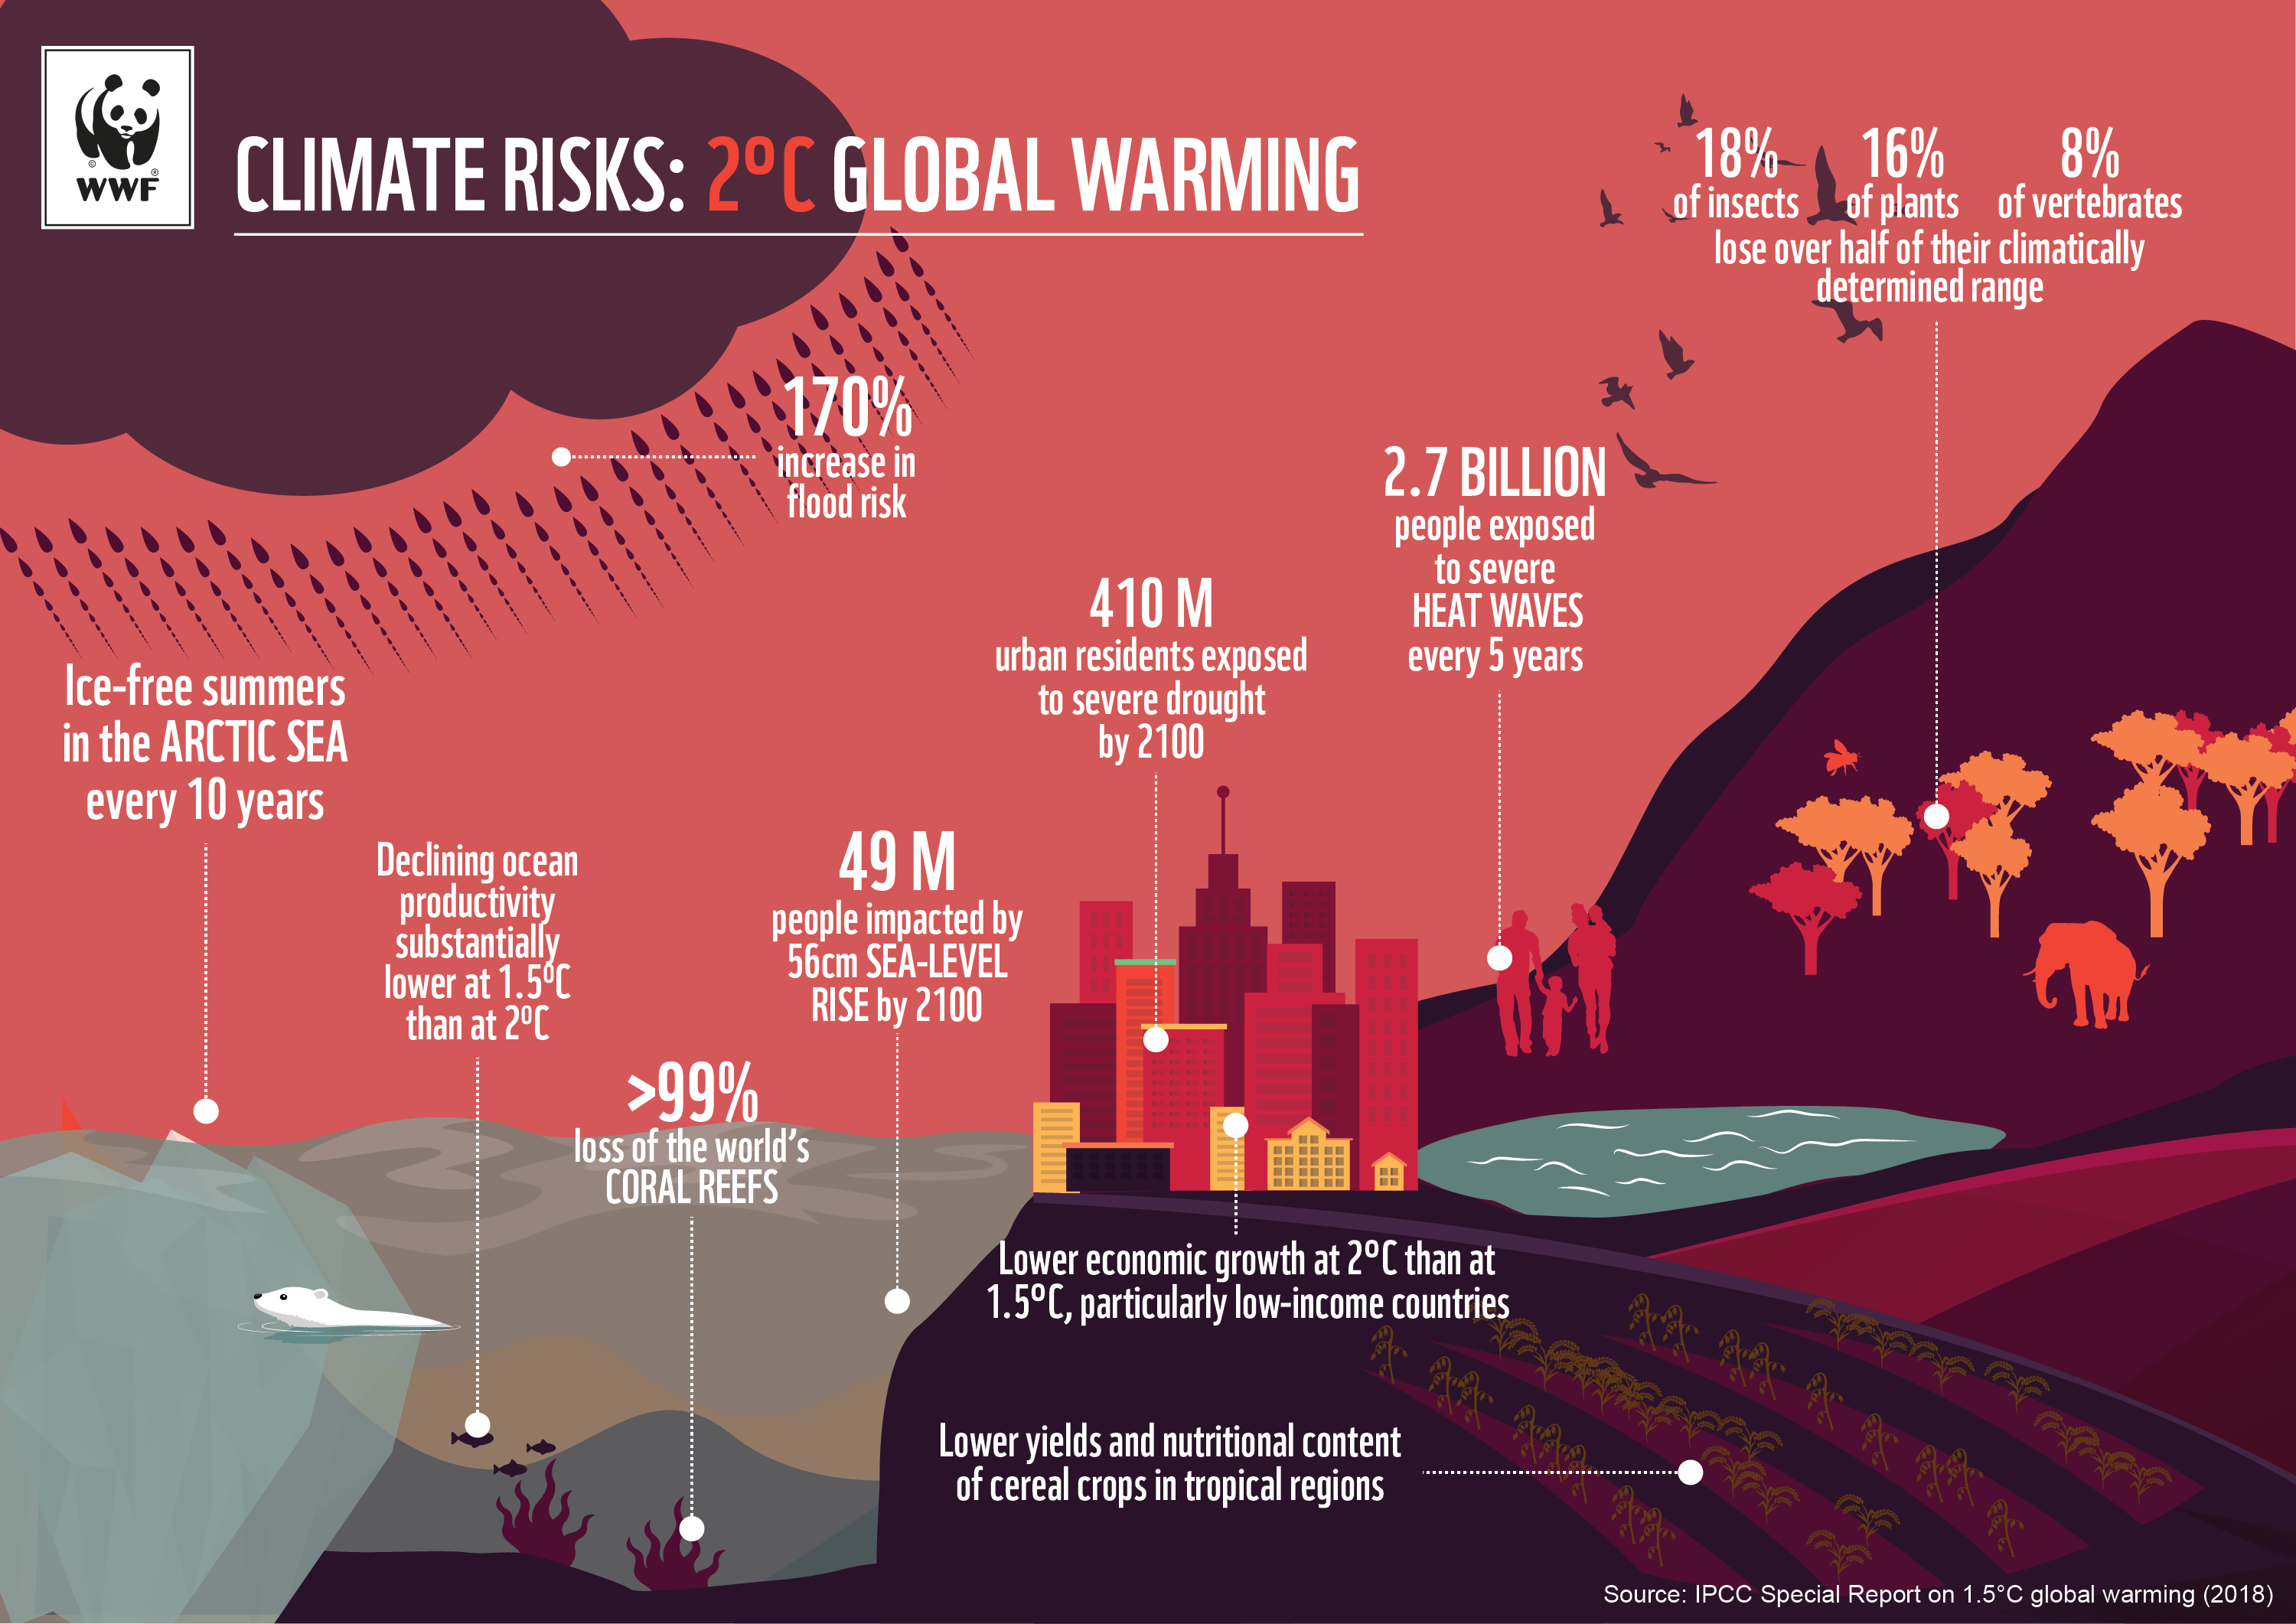 Little Things Matter Exposes Big Threat To James World 2 >> Cop 24 Wwf